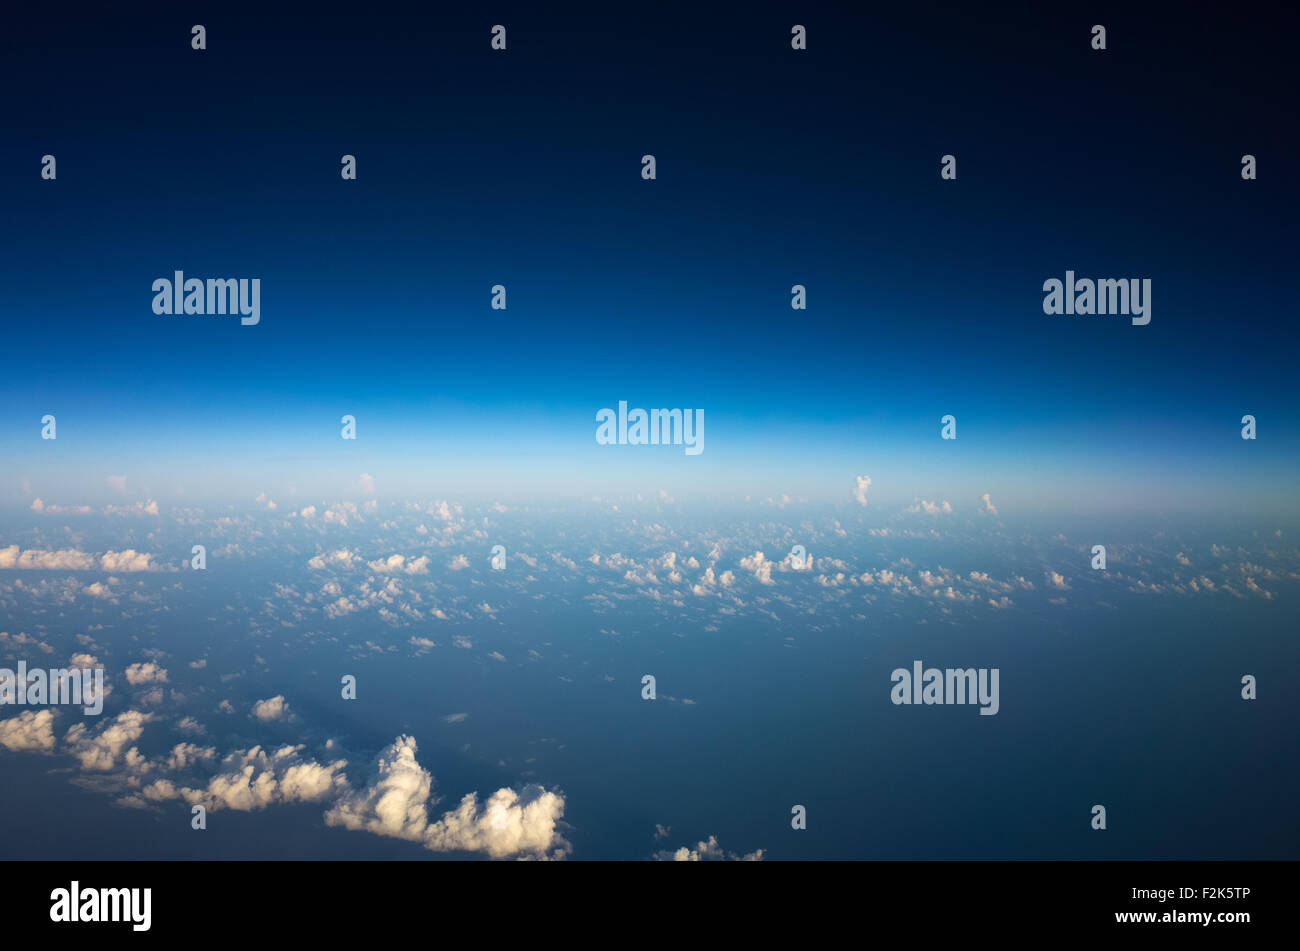 A view out the plane window flying over Mexico towards Mexico City. - Stock Image